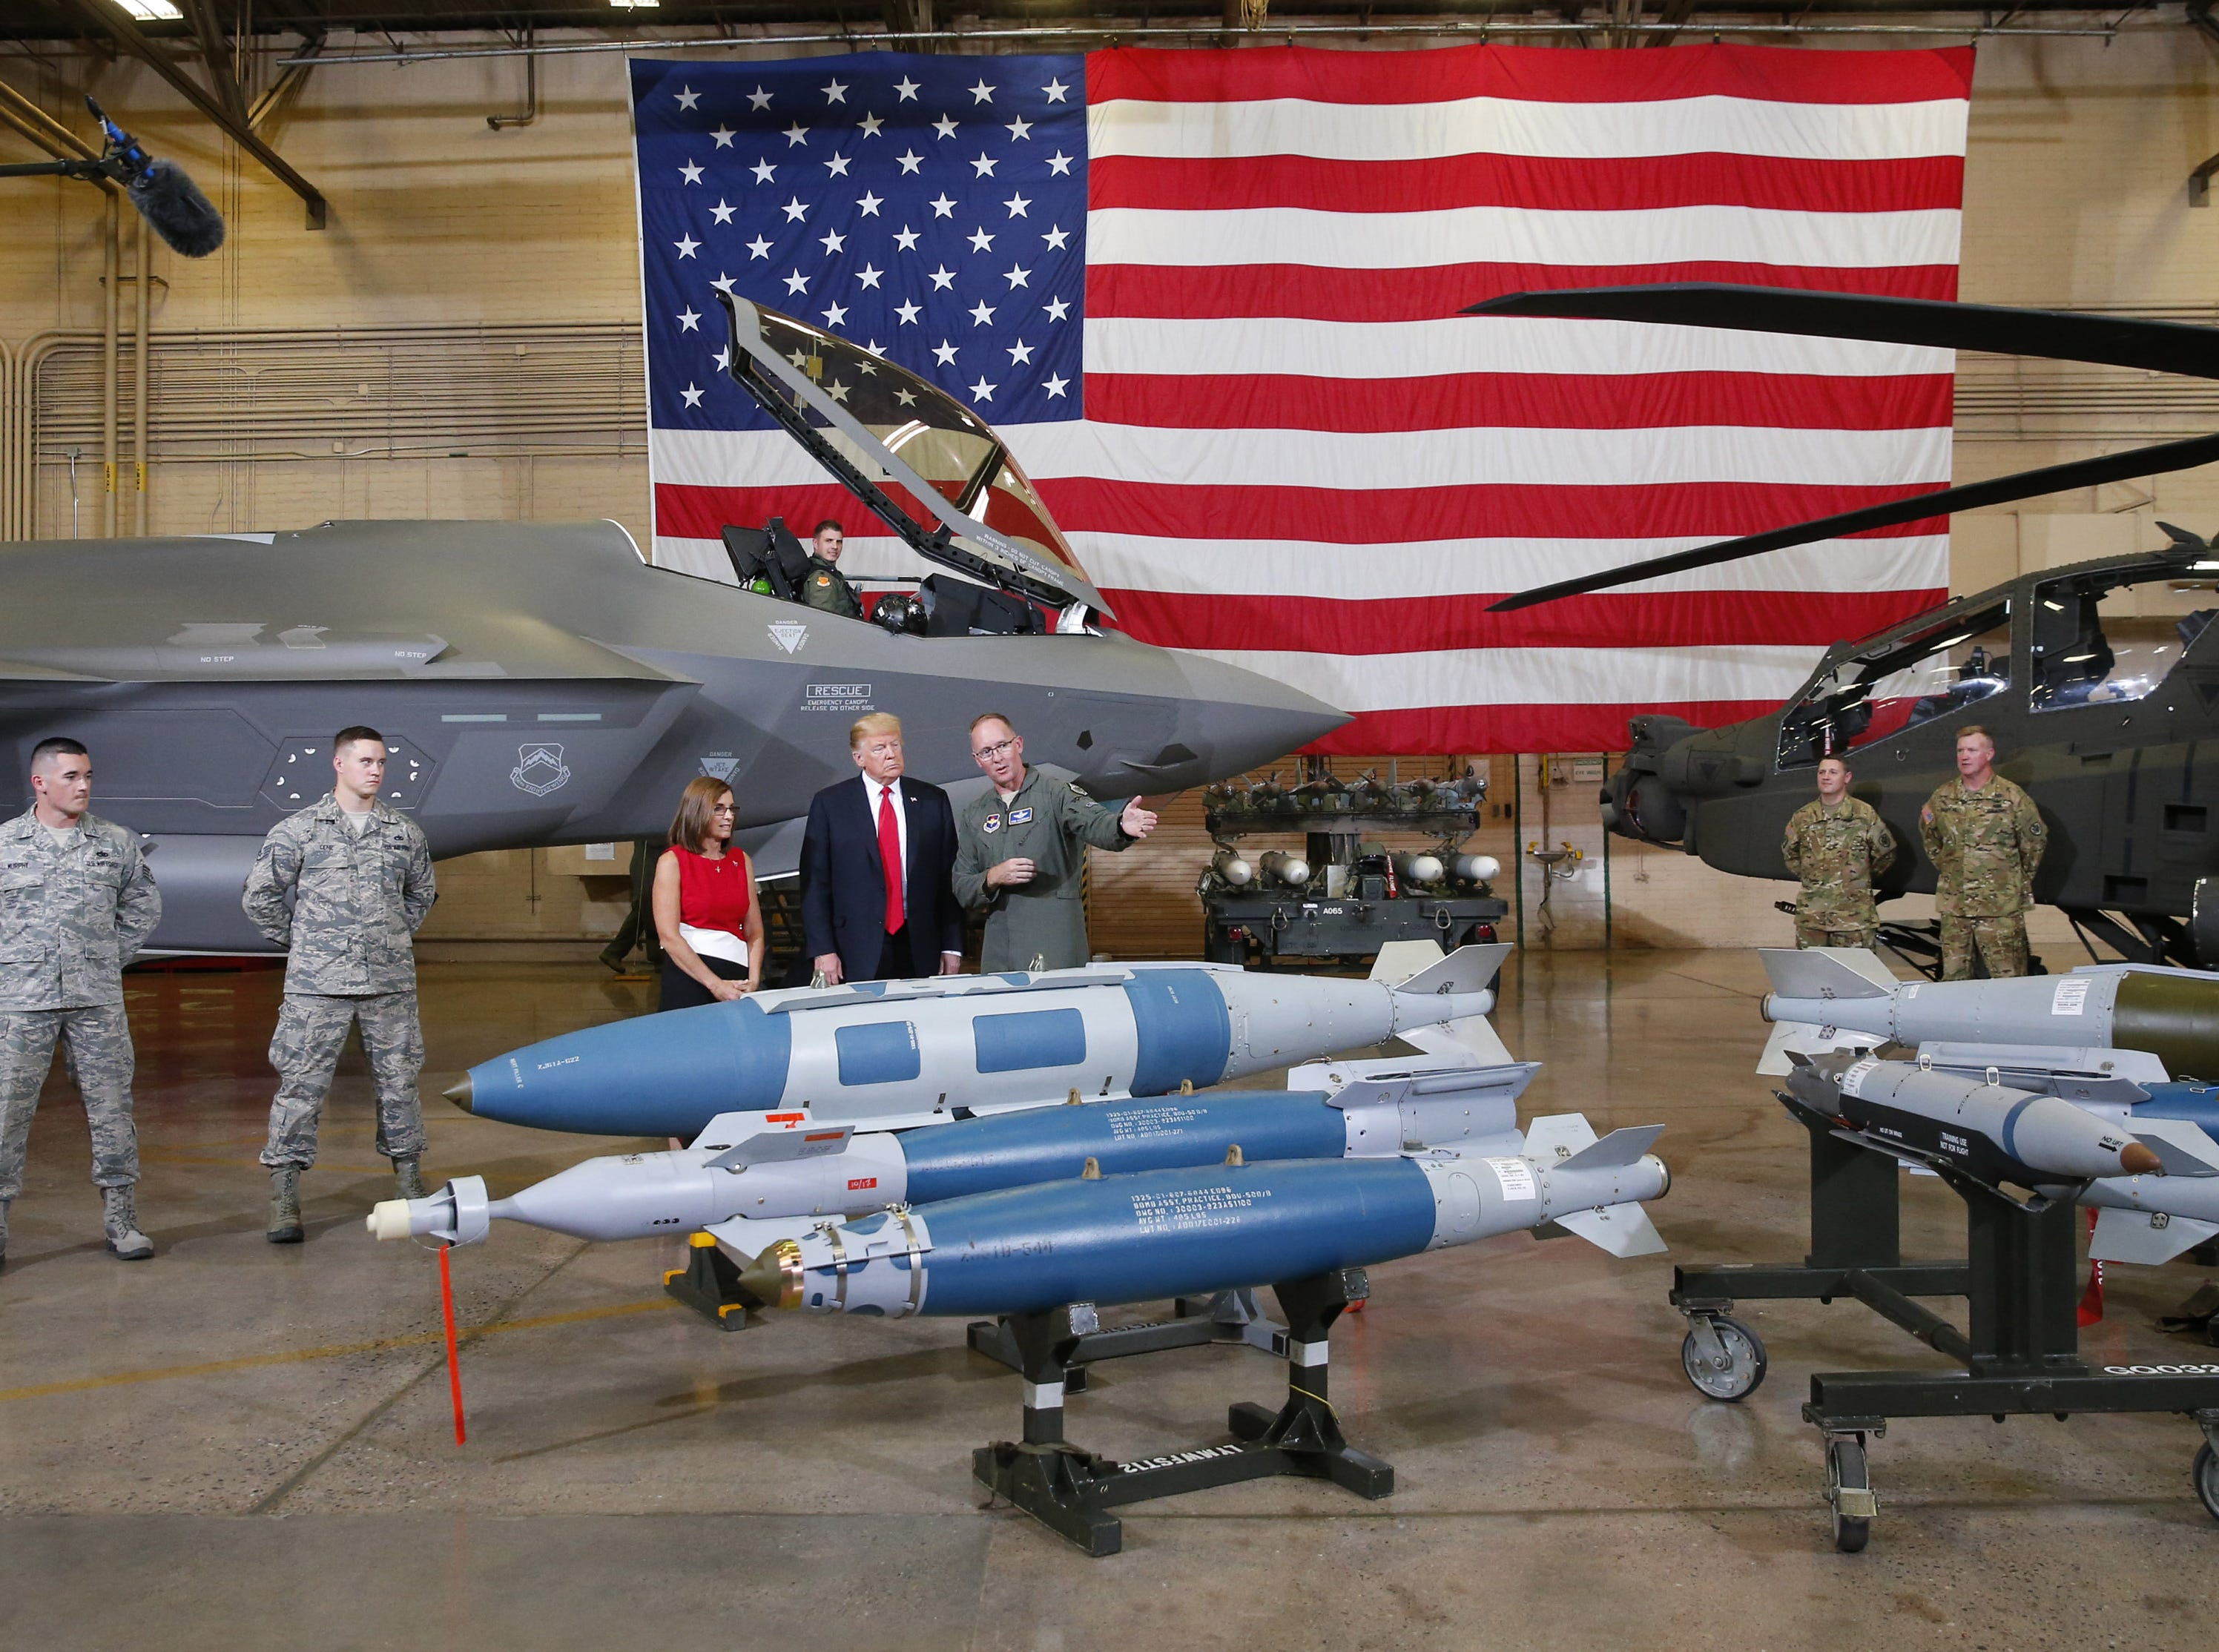 President Trump and Rep. Martha McSally are shown munitions during a defense capability and round-table tour at Luke Air Force Base in Glendale on October 19, 2018.